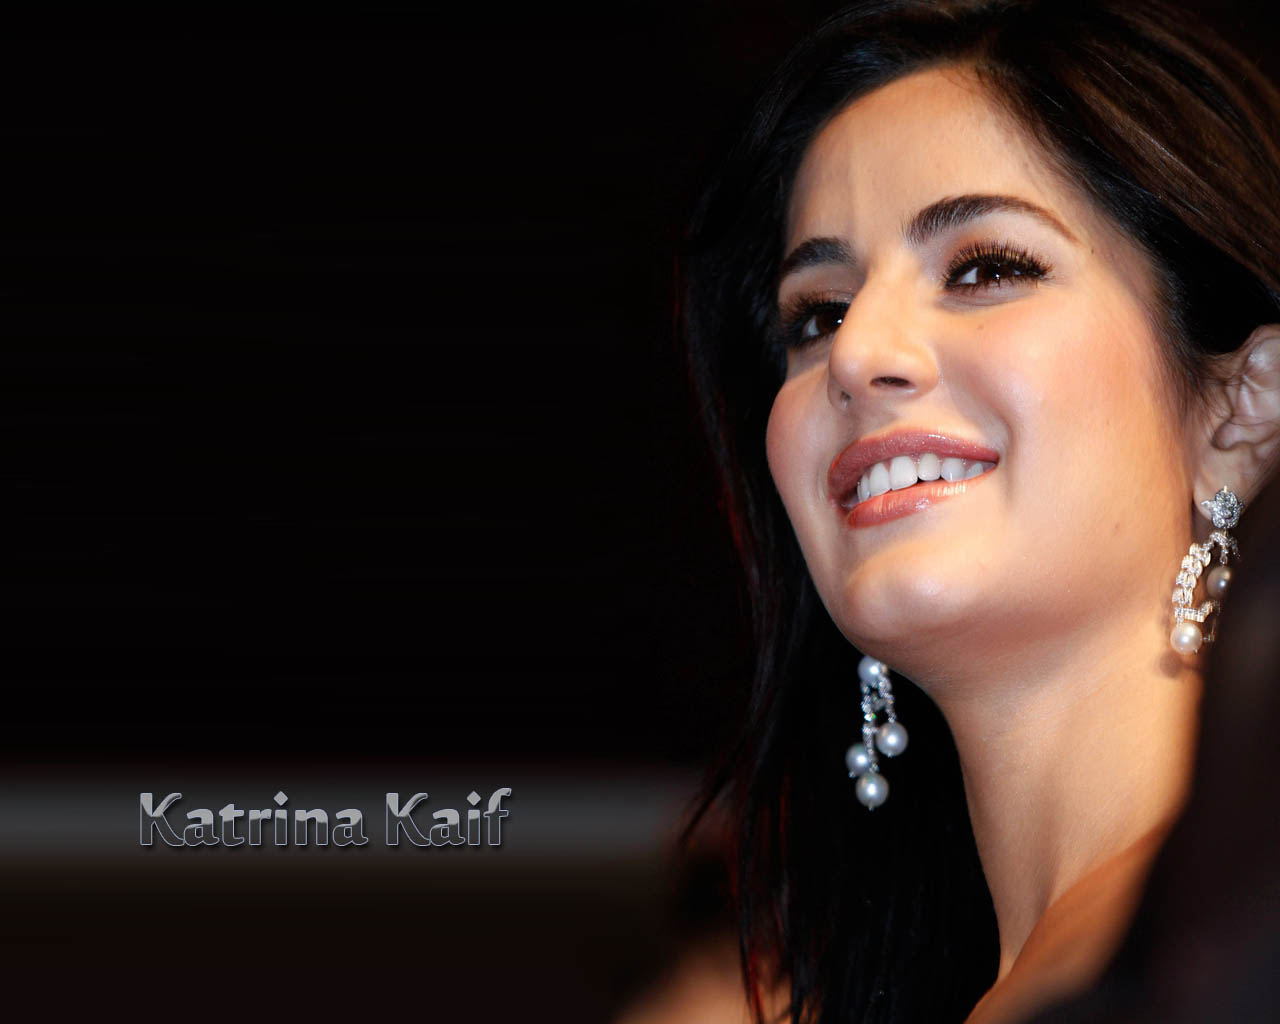 Hd wallpaper astronaut - Pic Funny Pictures Katrina Kaif Hd Pictur 2012